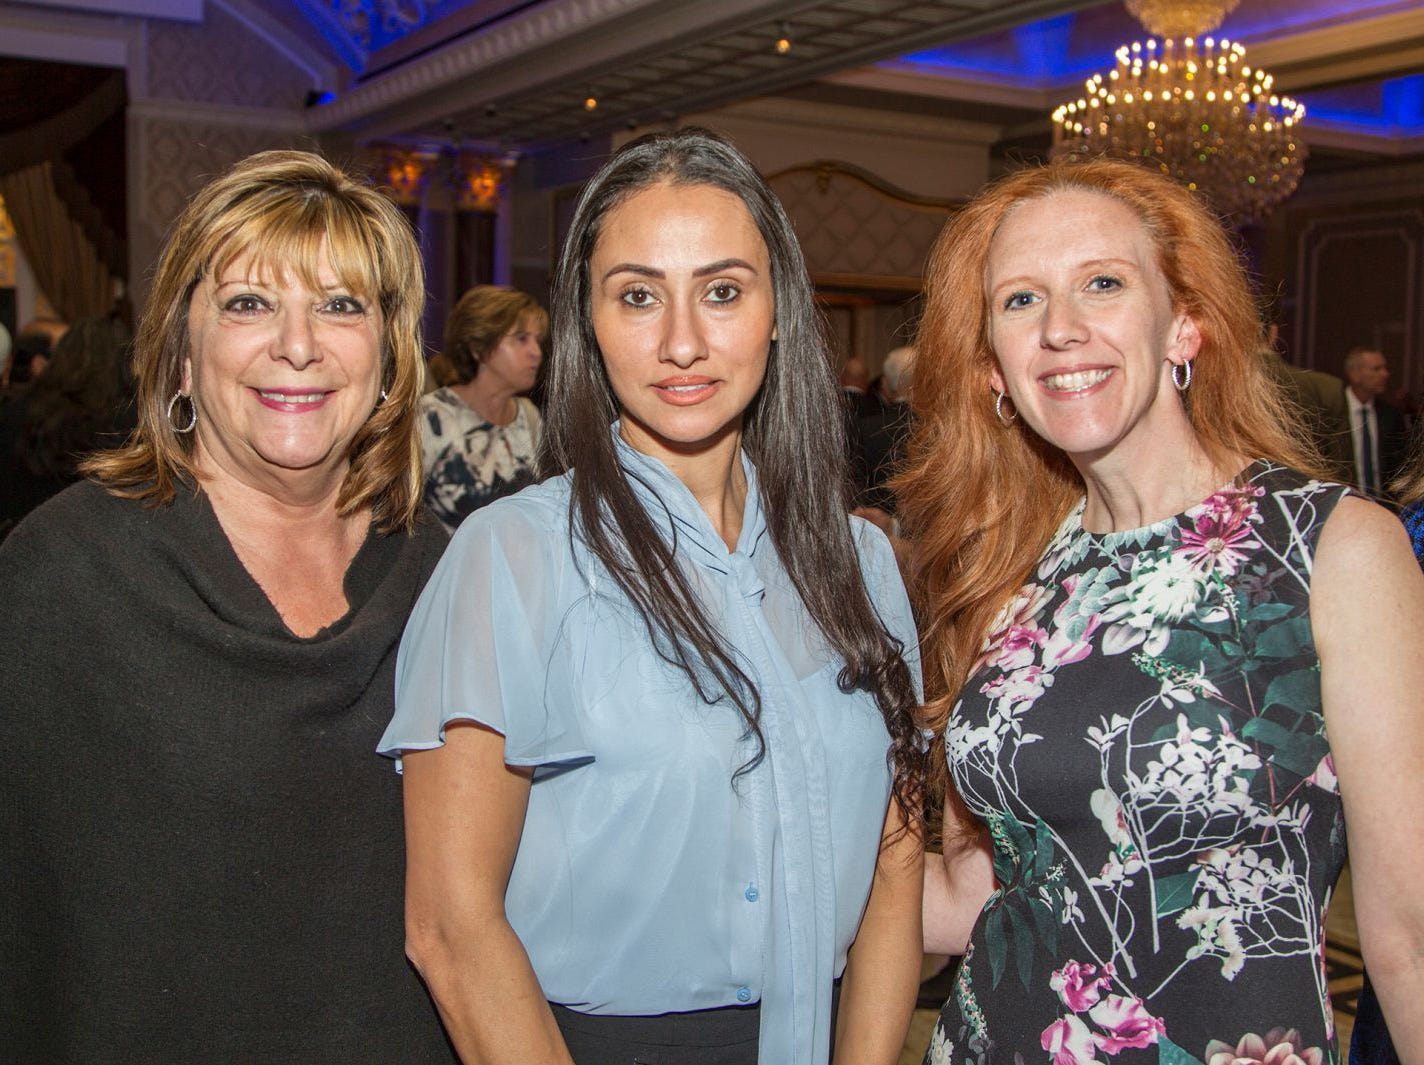 Margurite Herman, Maha Khatib, Christal Radburn. Holy Name Medical Center held its 2018 MS Center Awards Reception at the Venetian in Garfield. 10/23/2018